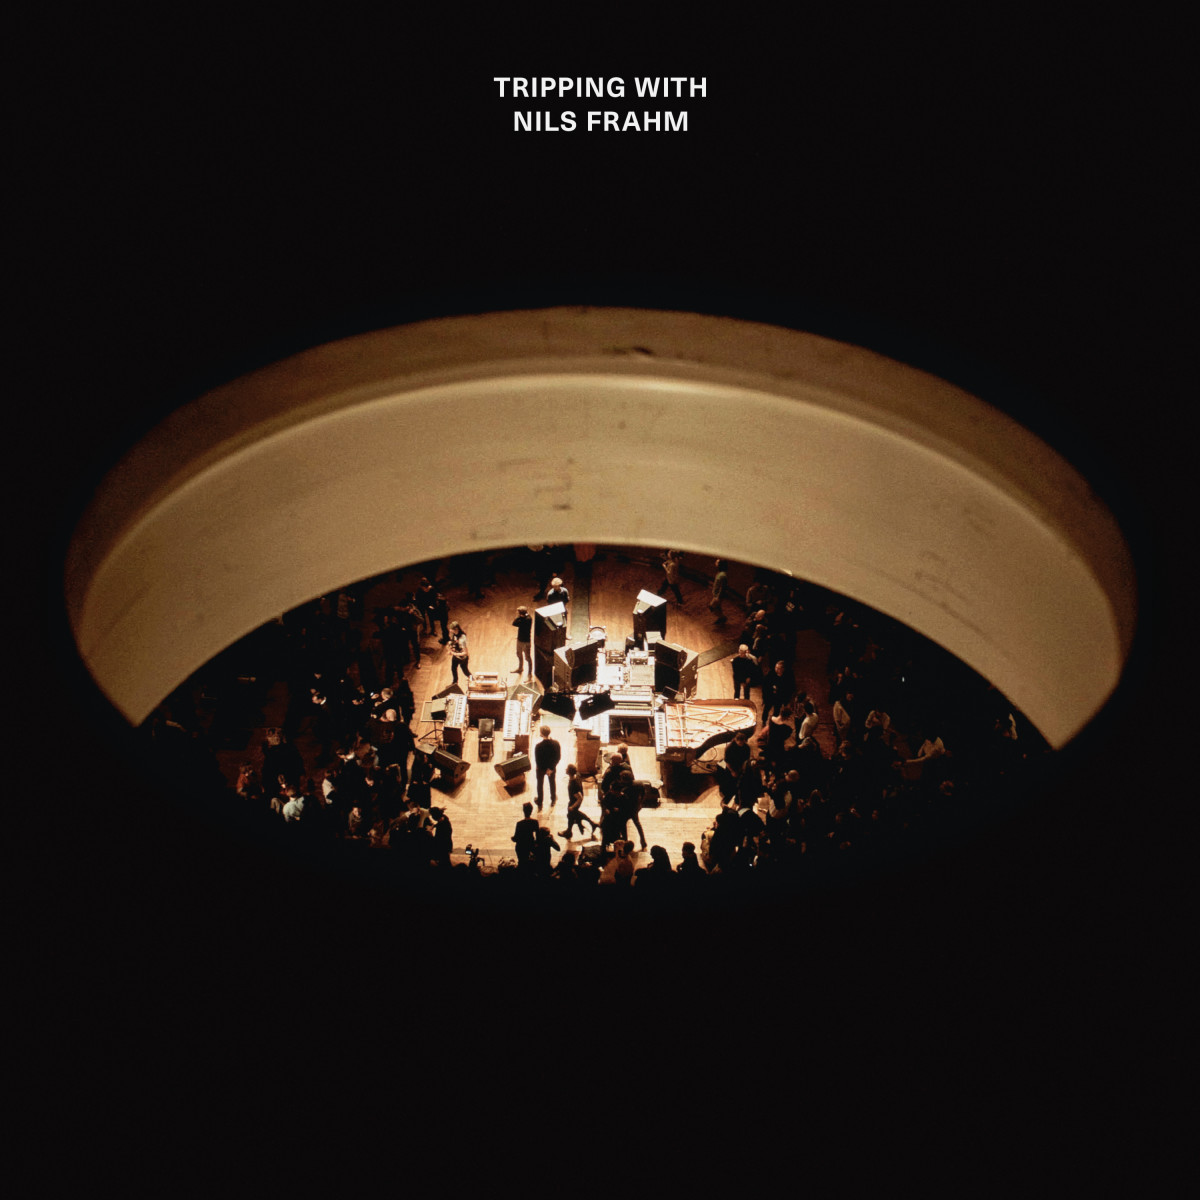 Nils Frahm Tripping With Nils Frahm Cover